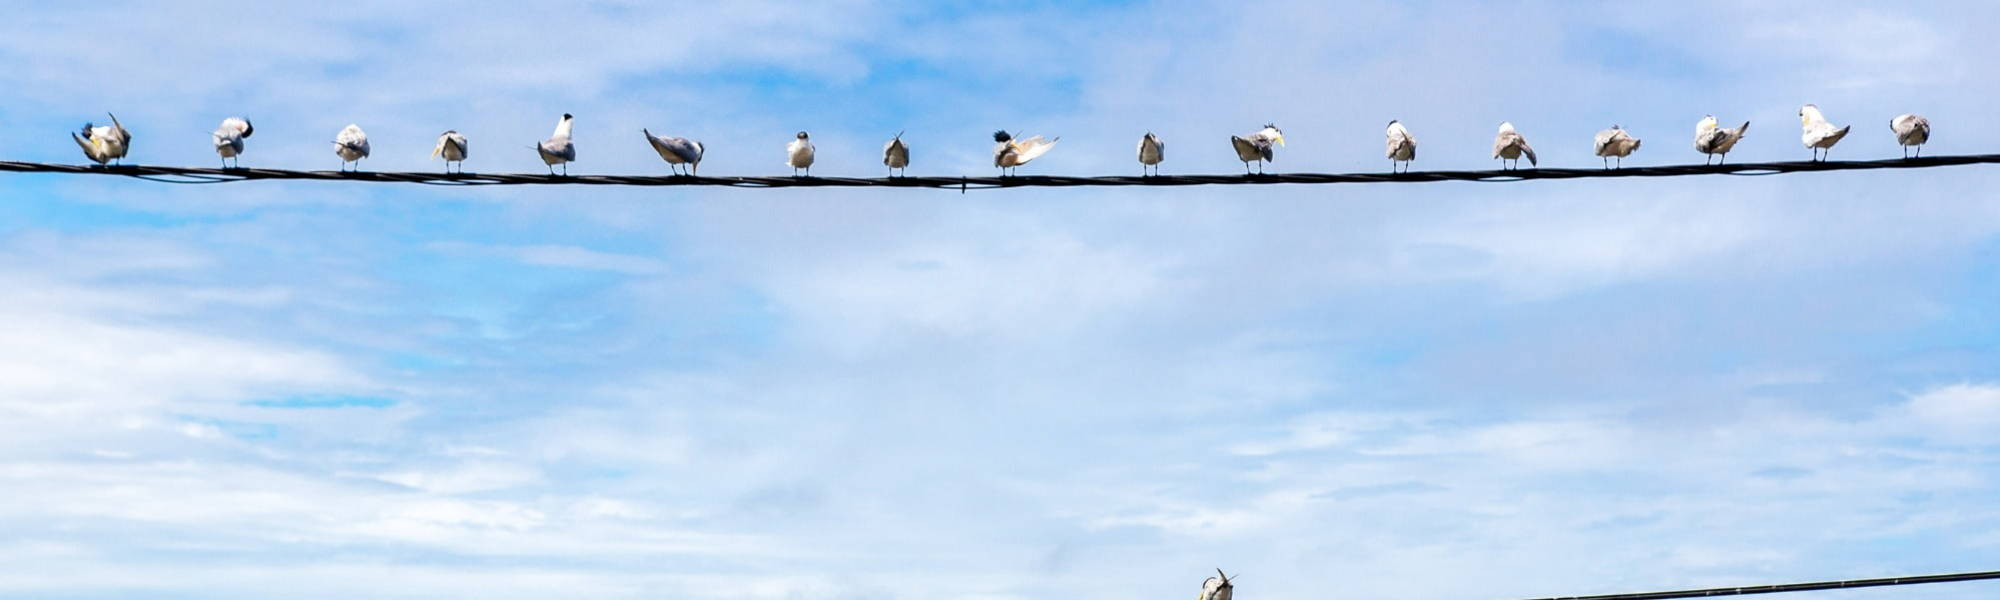 Seagulls sitting on power lines